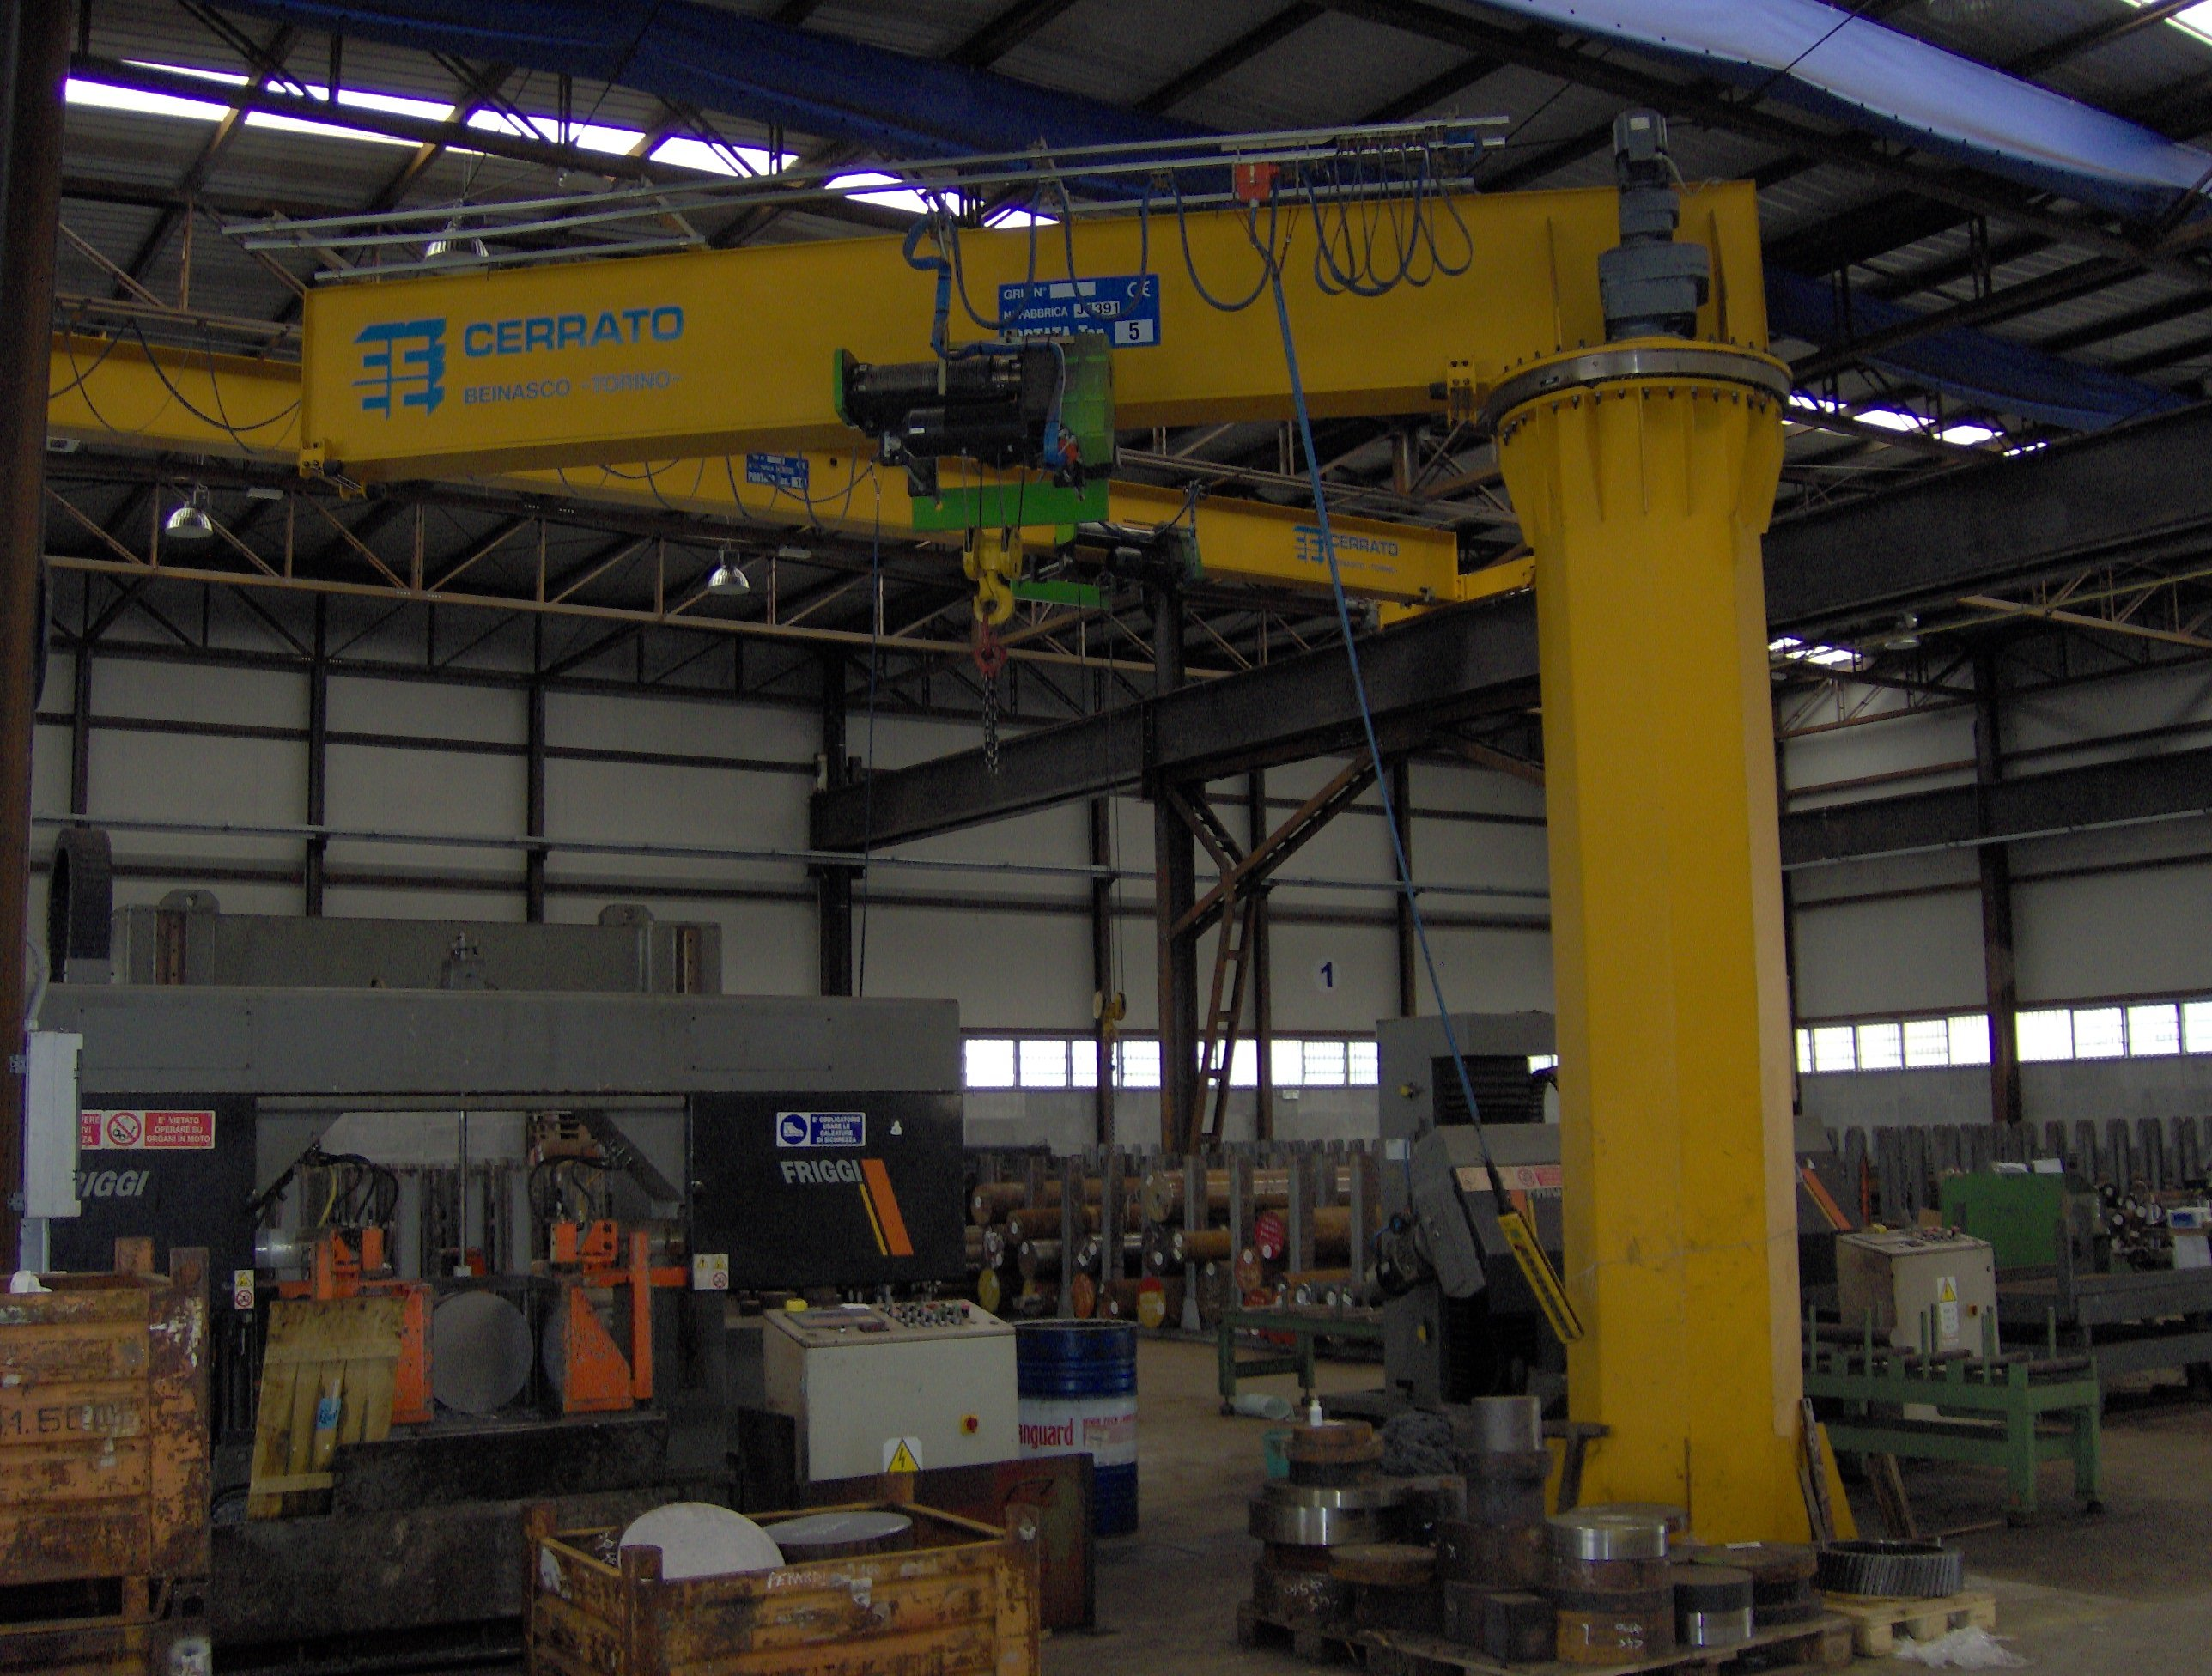 Jib crane in Beinasco